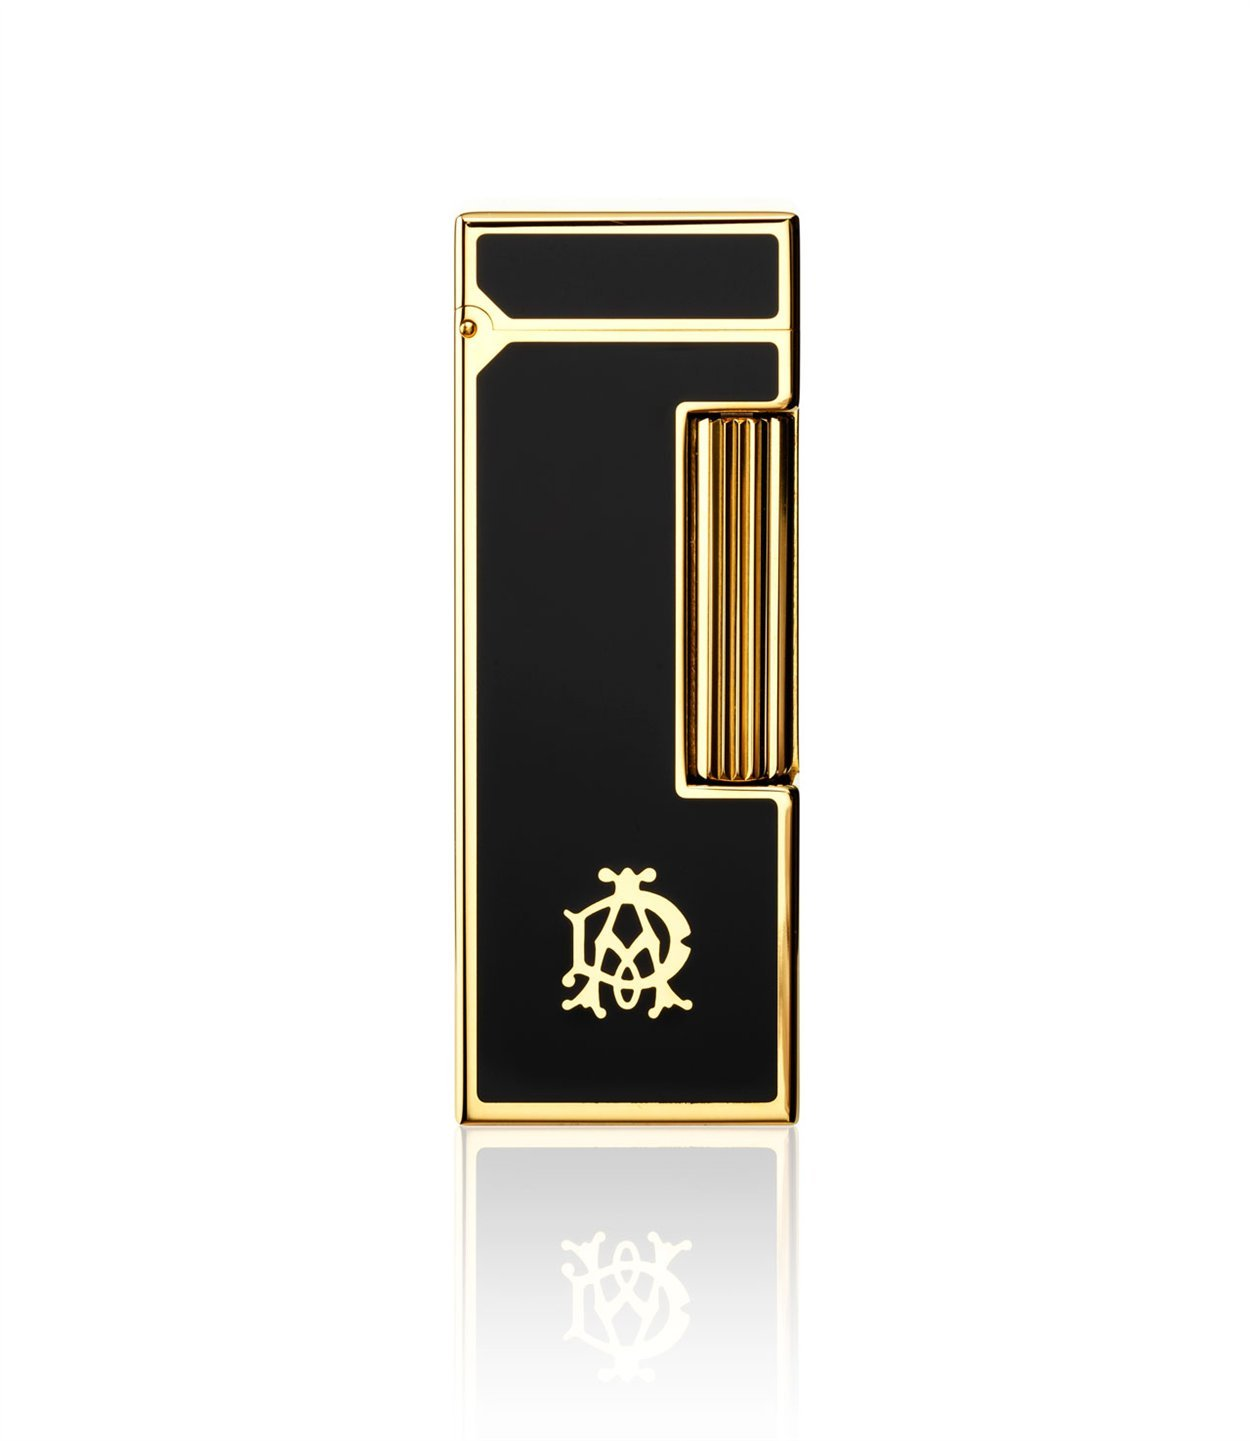 Dunhill Rollagas Black Laque Panels Gold (60-2401)